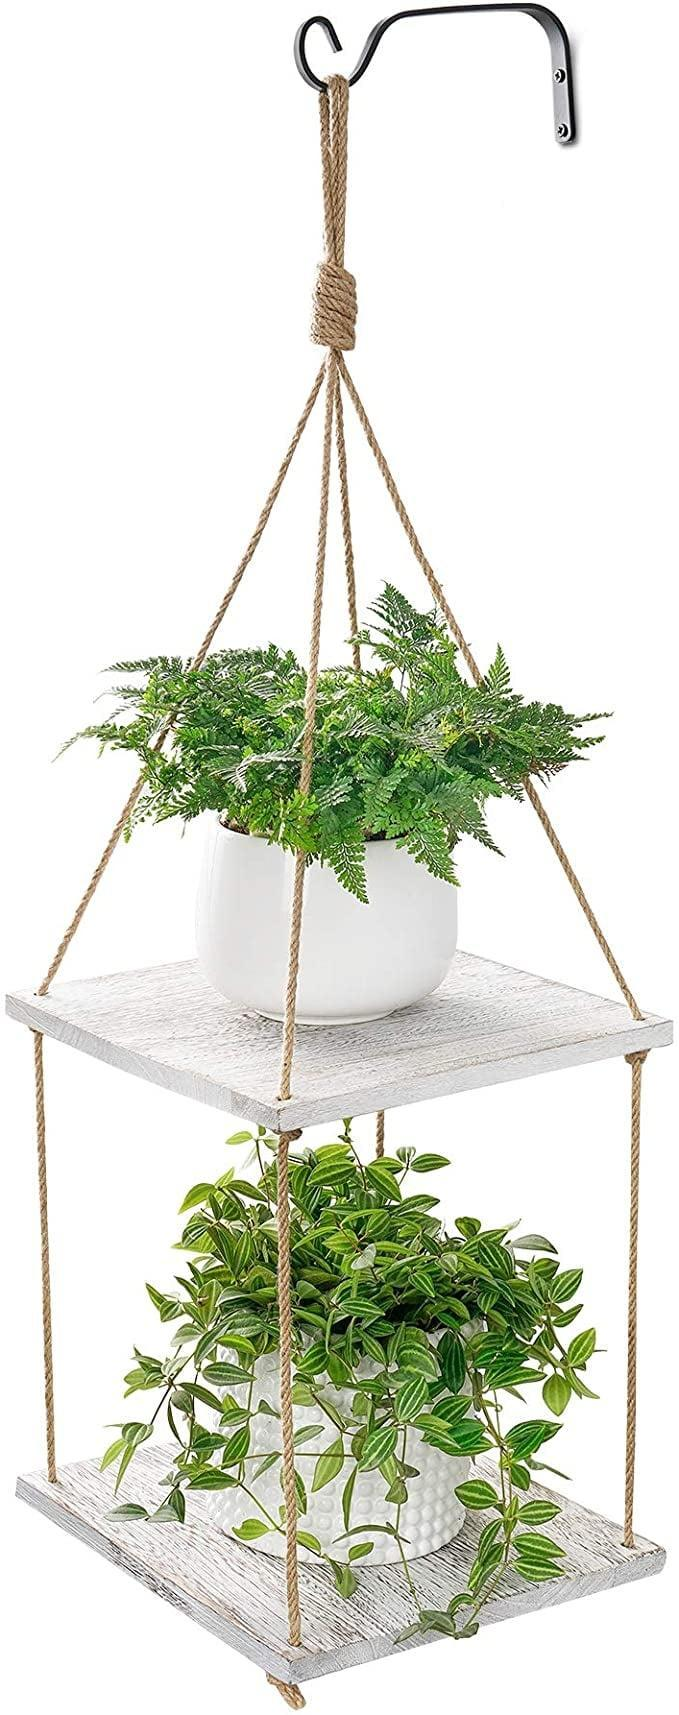 <p>If you have a lot of plants, the <span>POTEY Hanging Plant Shelf 2 Tier Wood Planter Hanger with Jute</span> ($22) might come in handy.</p>